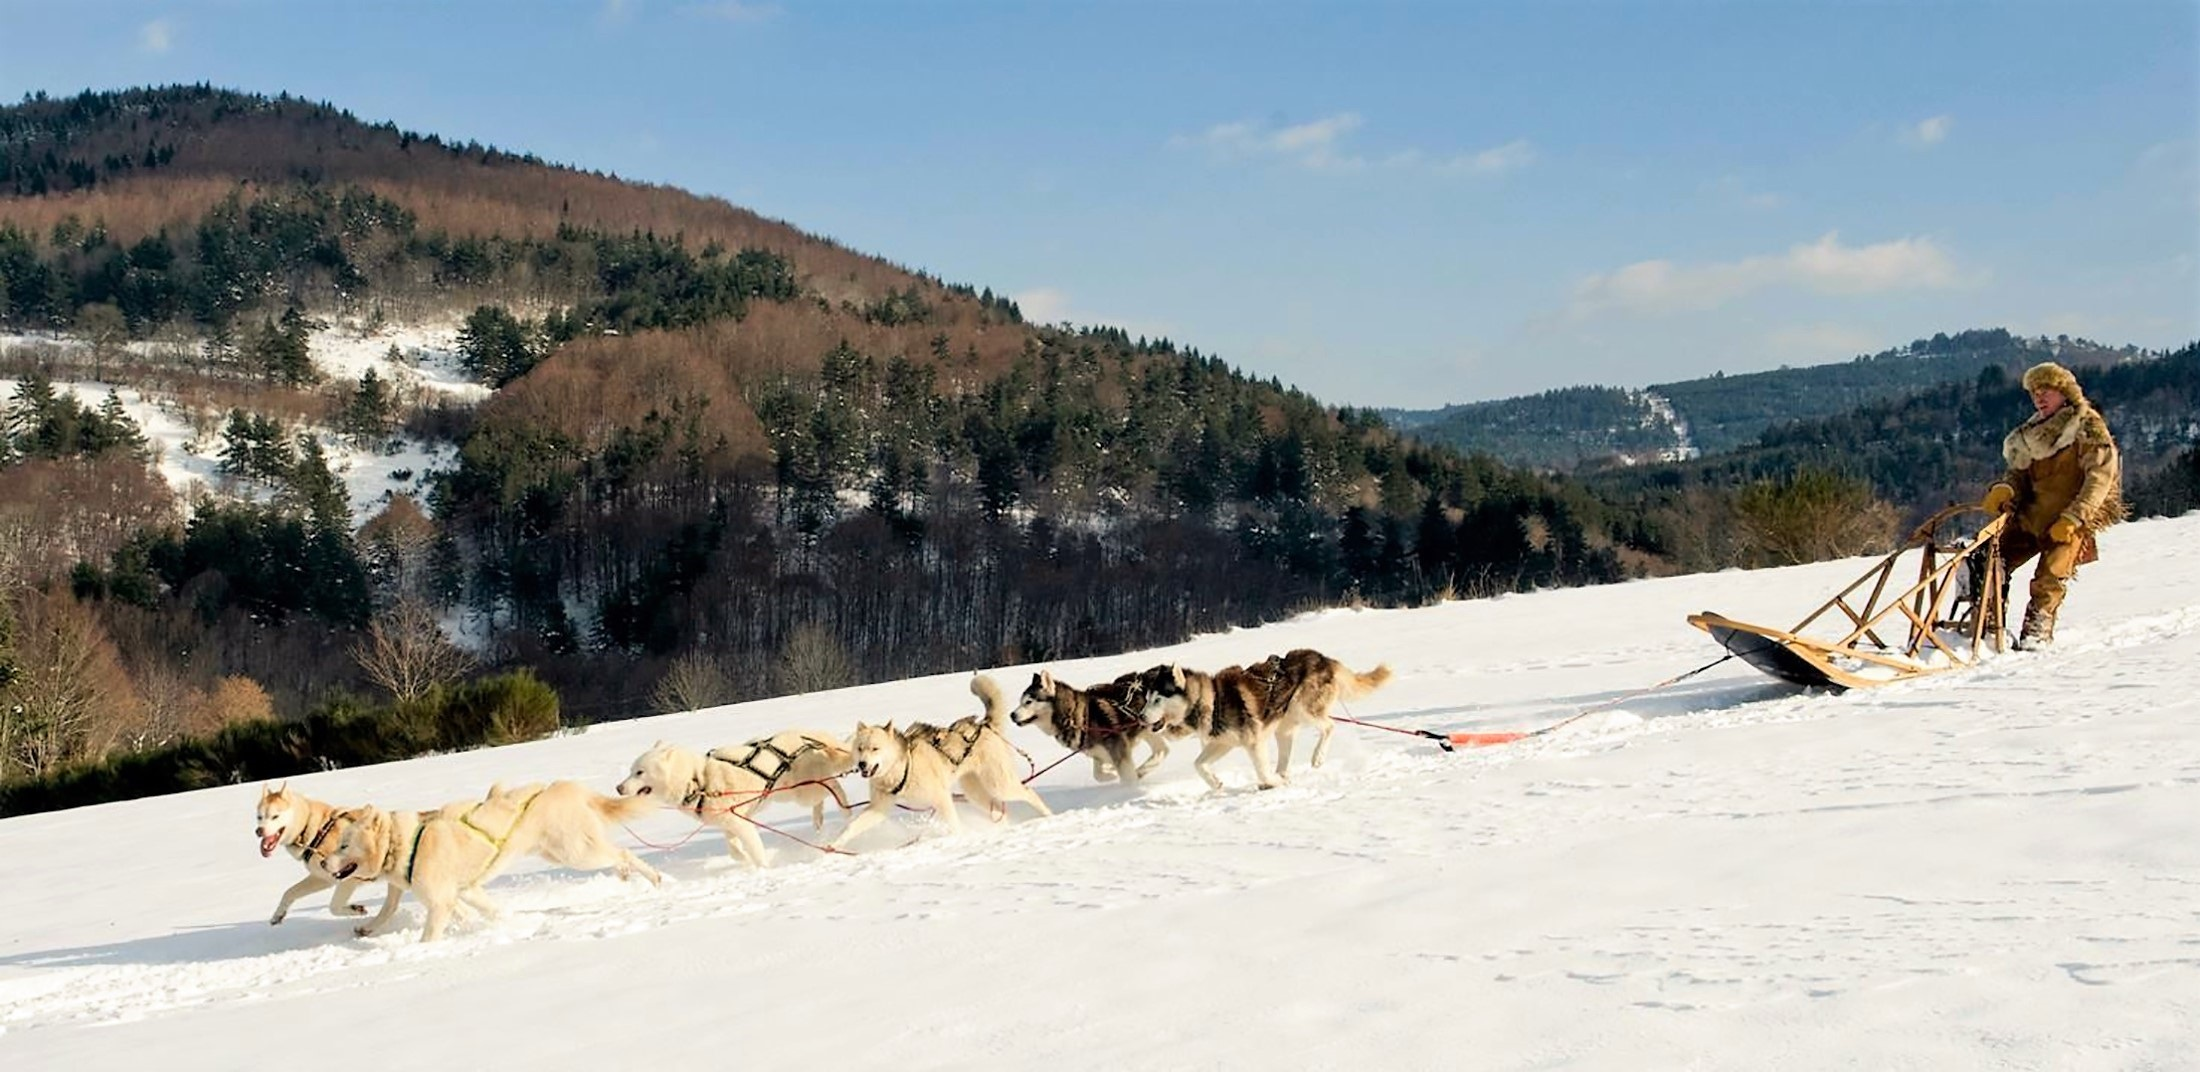 Wolf Ride, Activity, Animal, Frozen, Human, HQ Photo